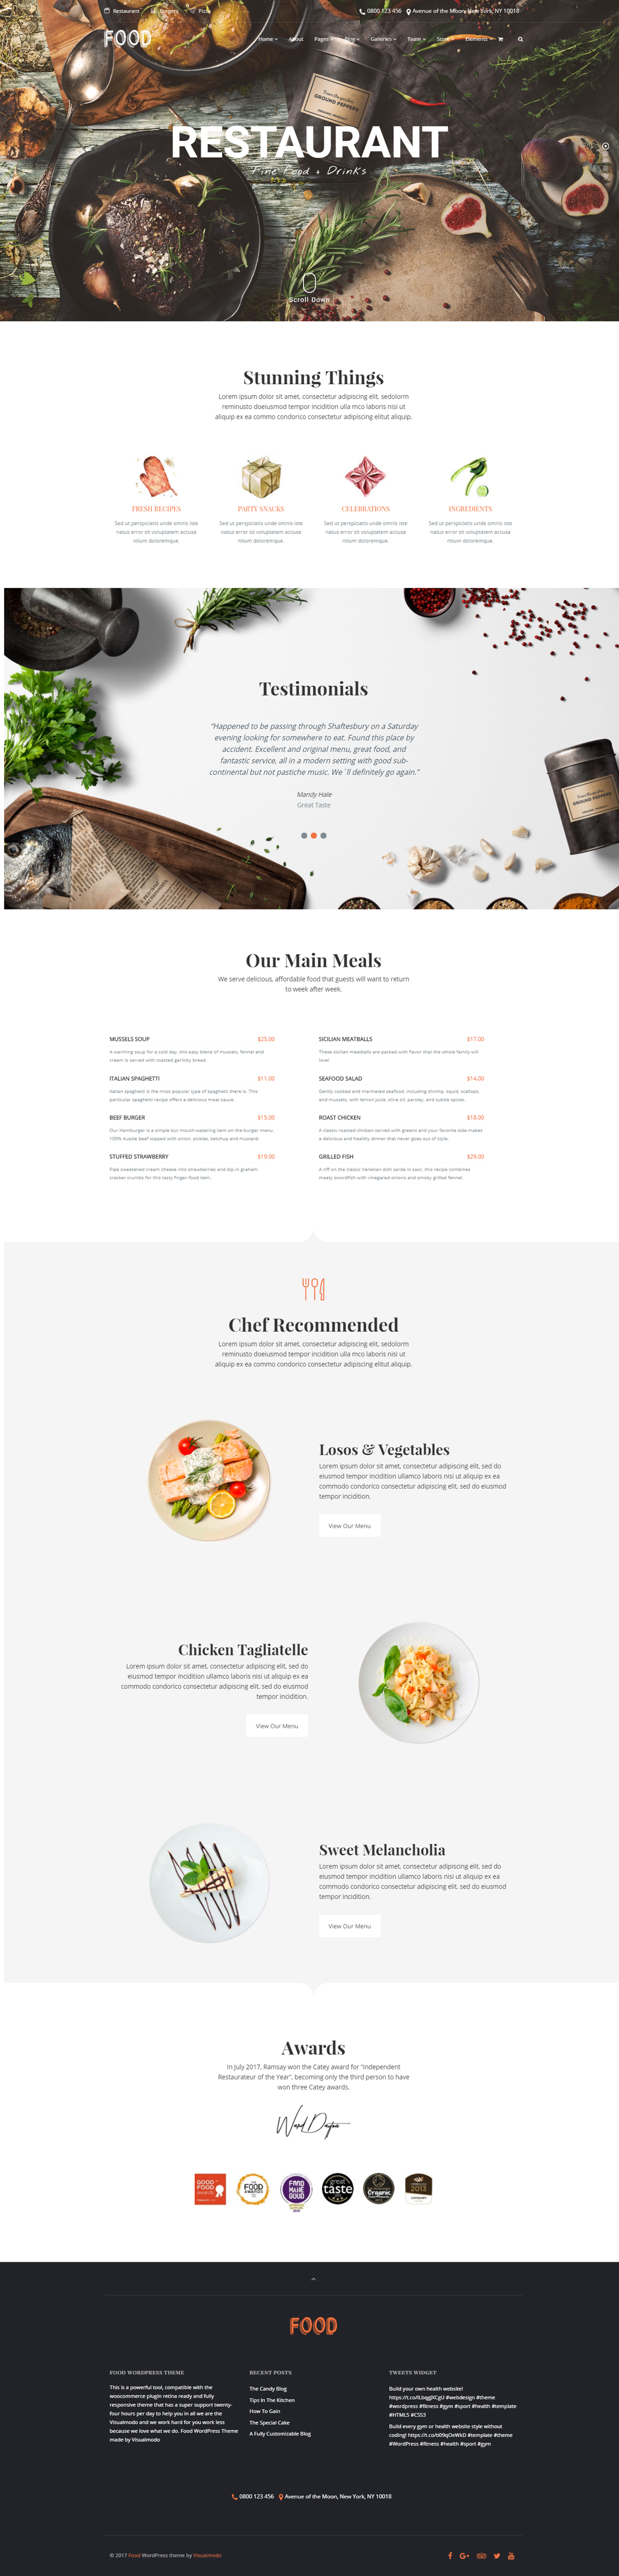 Food WordPress Theme Responsive Restaurant Template by